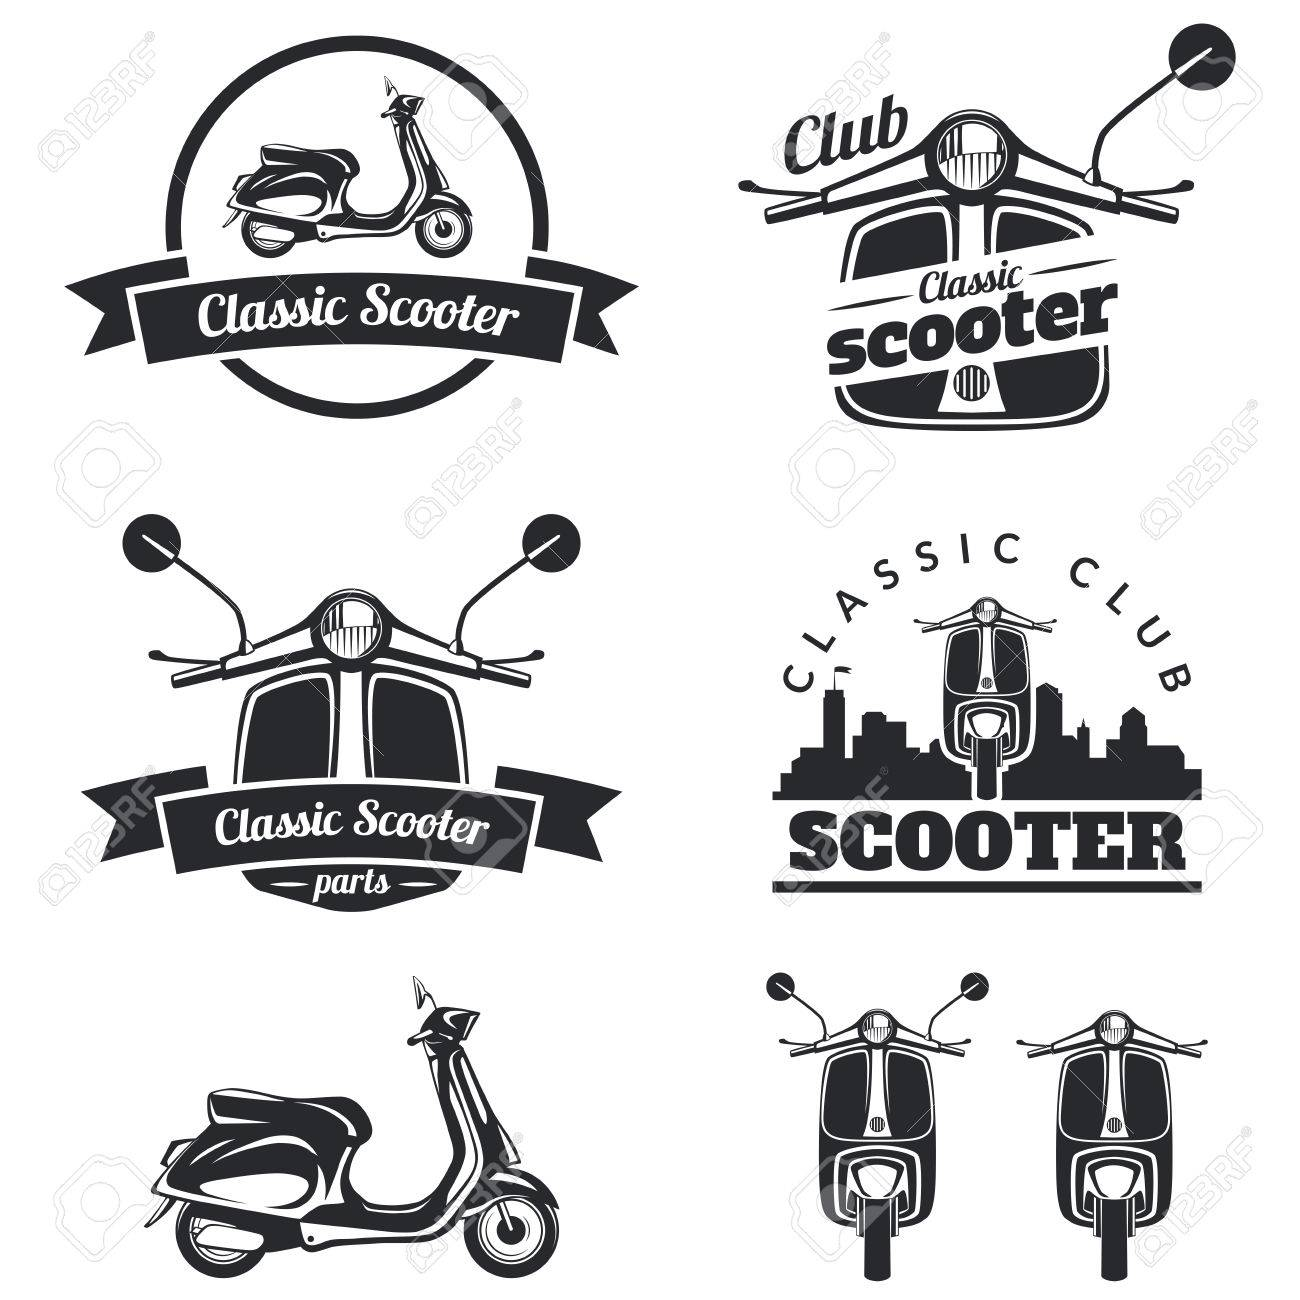 set of classic scooter emblems icons and badges urban street royalty free cliparts vectors and stock illustration image 47713233 123rf com